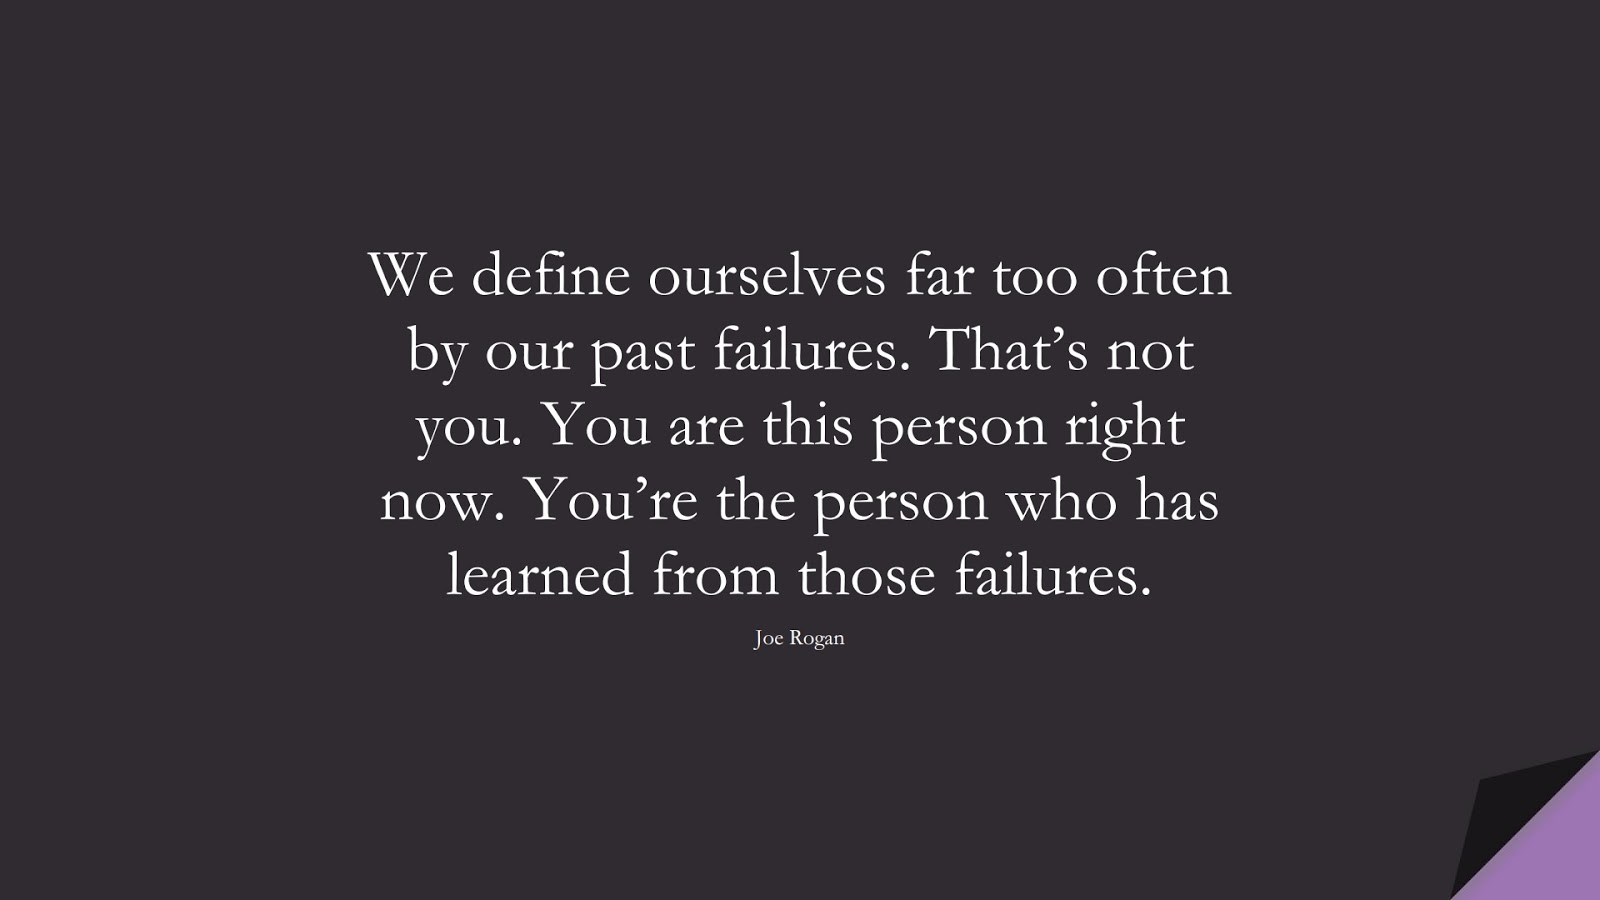 We define ourselves far too often by our past failures. That's not you. You are this person right now. You're the person who has learned from those failures. (Joe Rogan);  #StoicQuotes